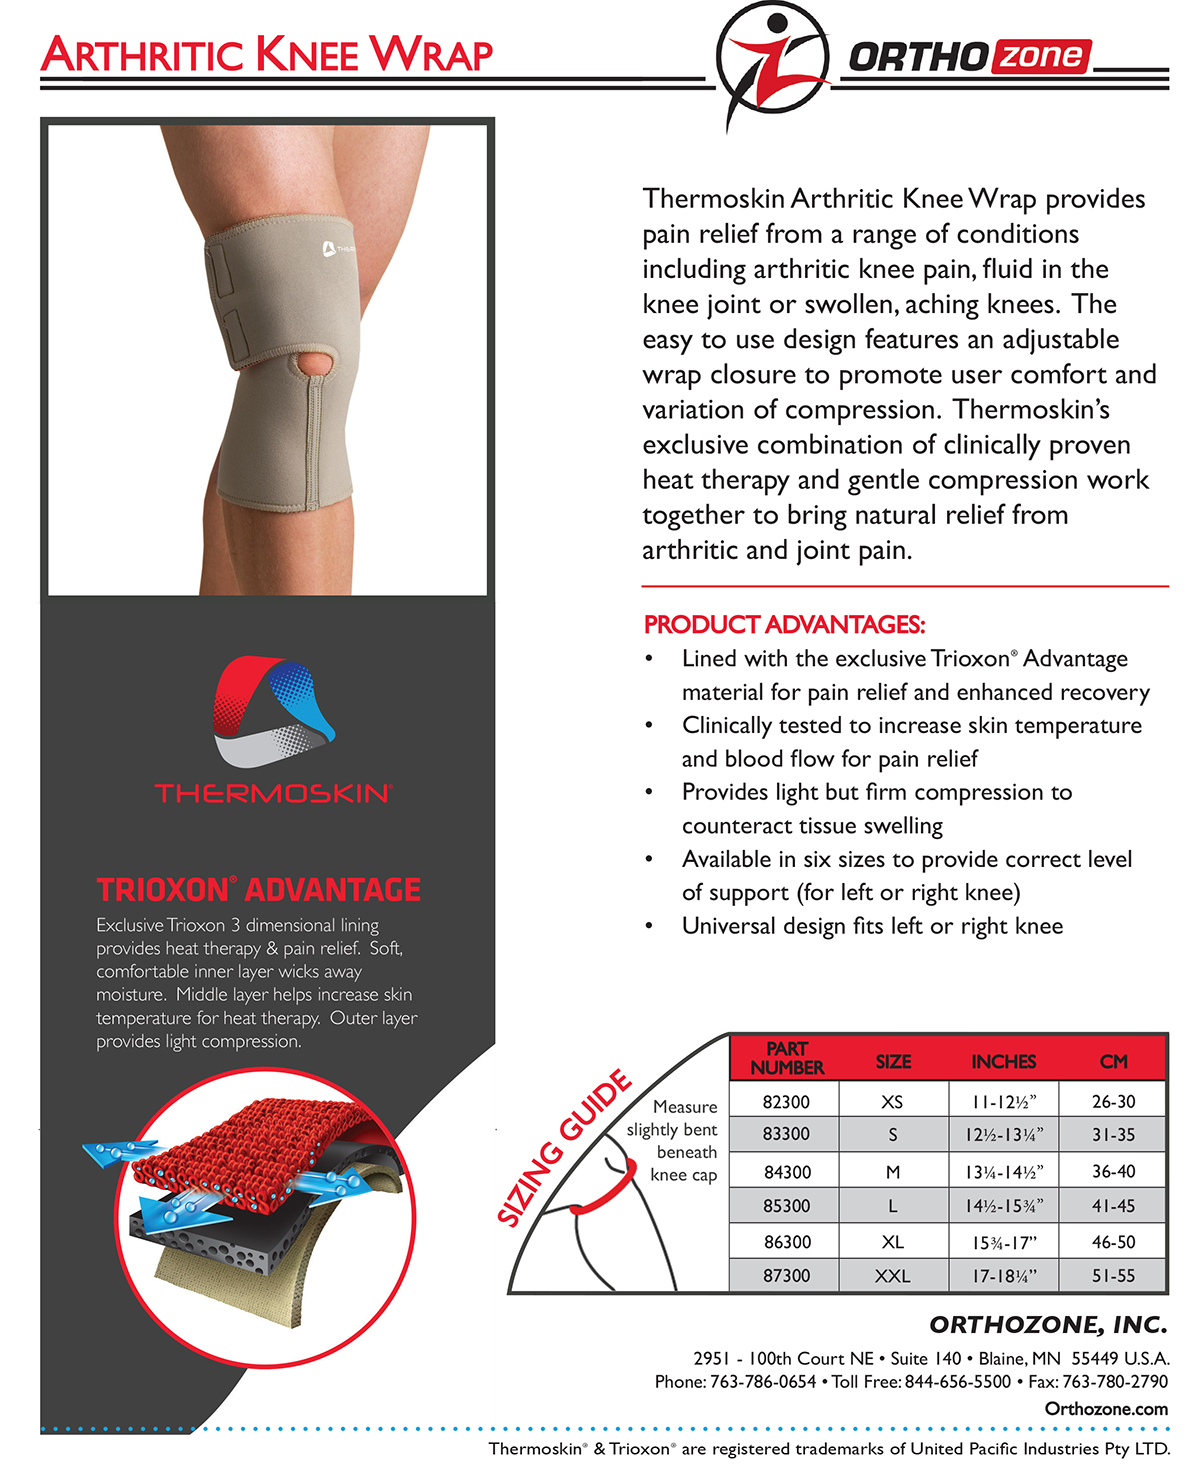 Thermoskin Arthritic Knee Wrap, Beige. $39.95 alternative product image 1